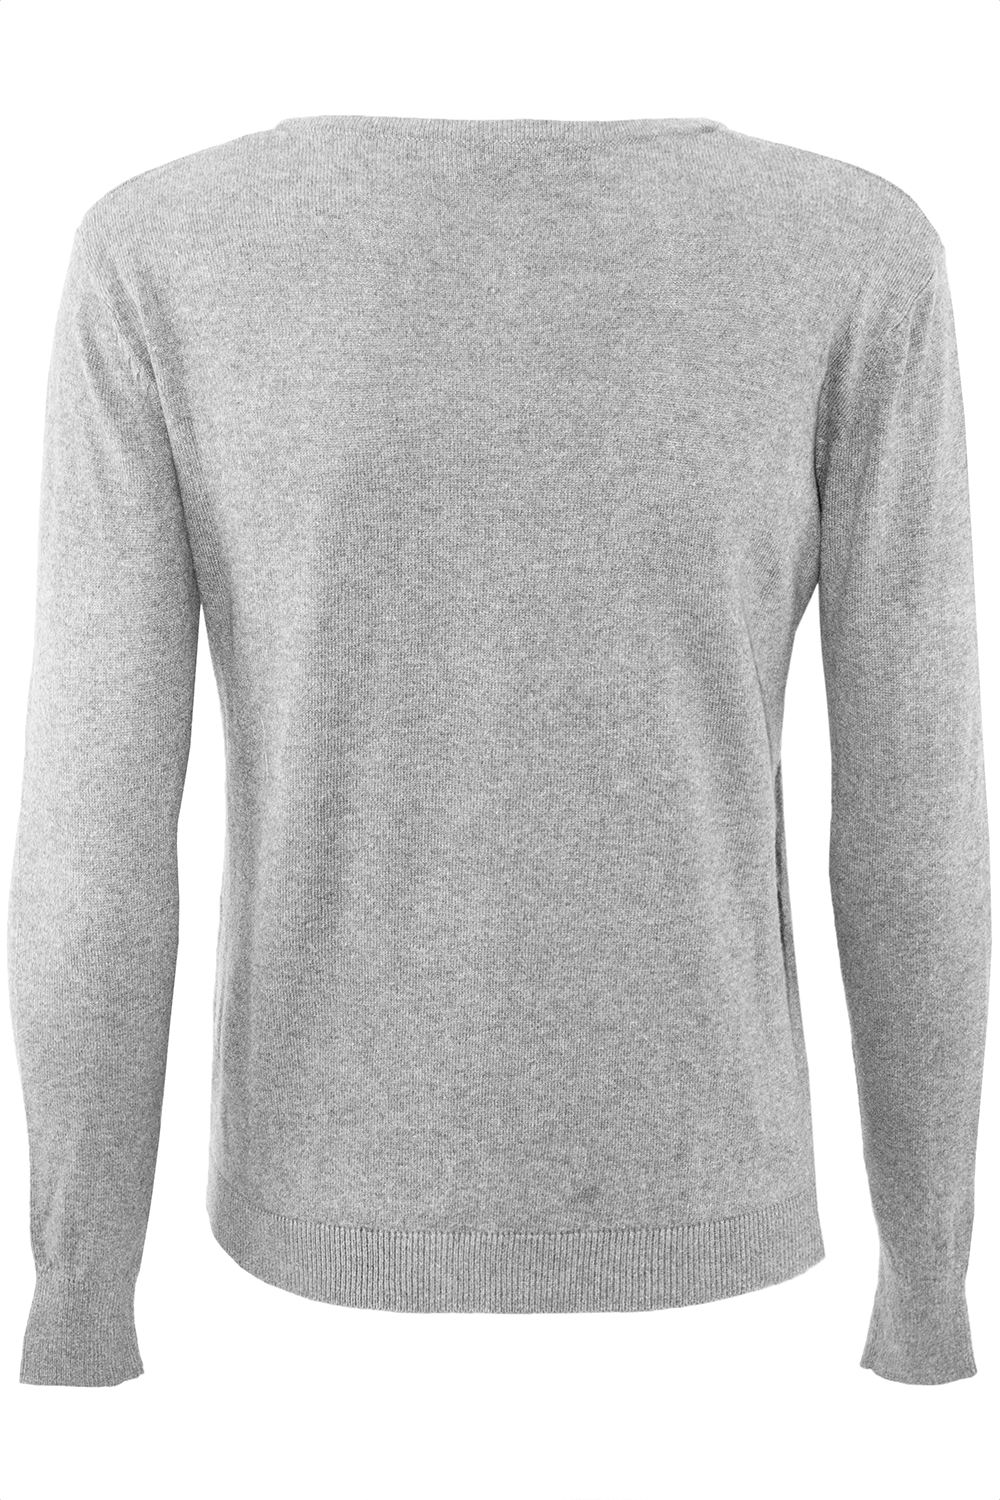 Womens Ladies Ex H/&M Buttons Long Sleeve Sweater Knitted Baggy Pullover Jumper